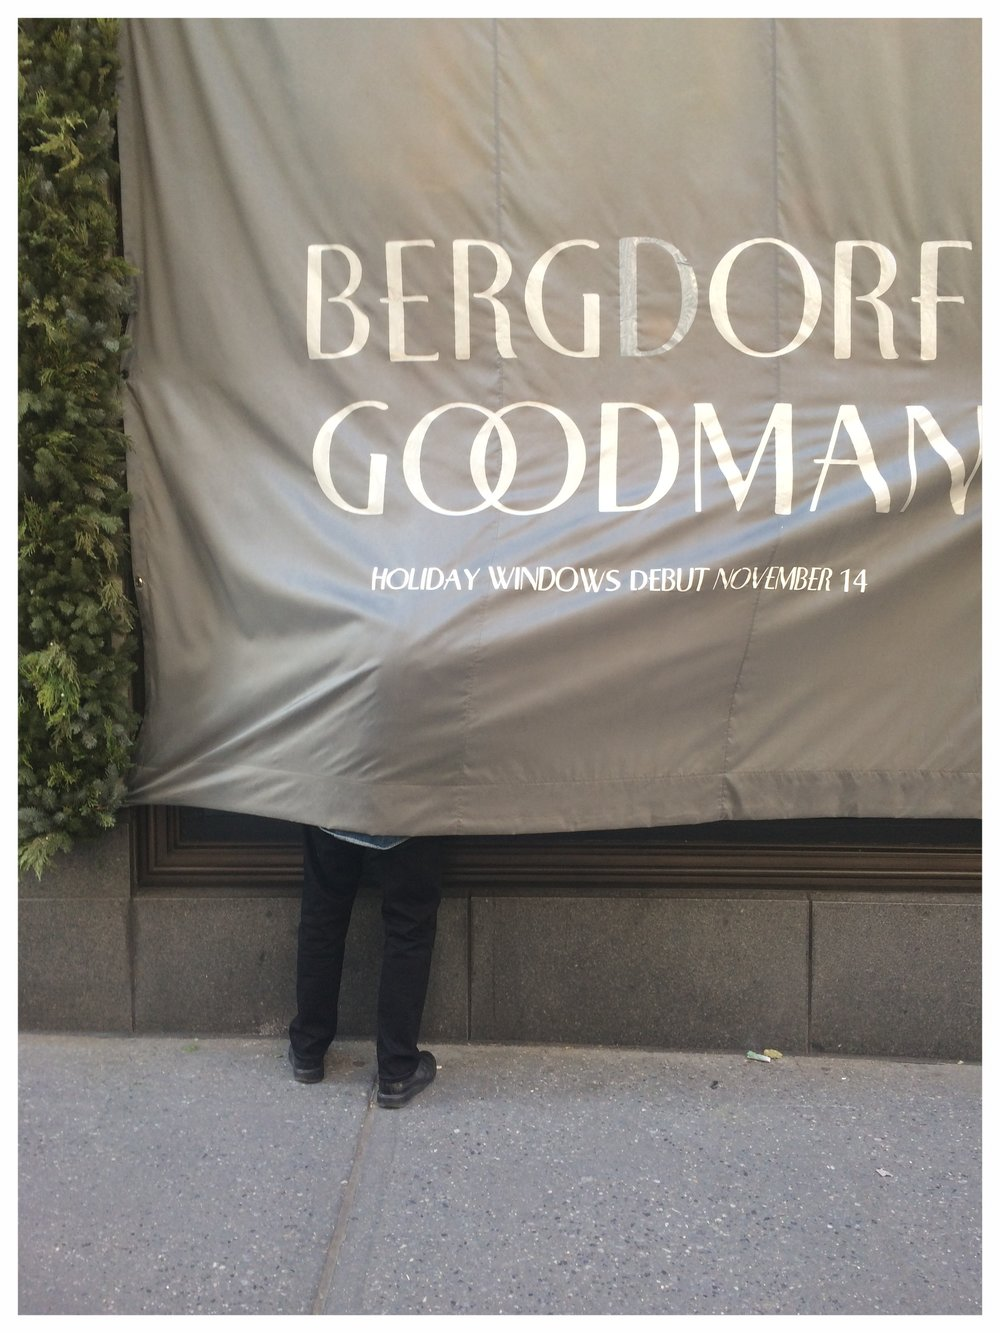 David Hoey, Bergdorf's creative genius taking a peek.